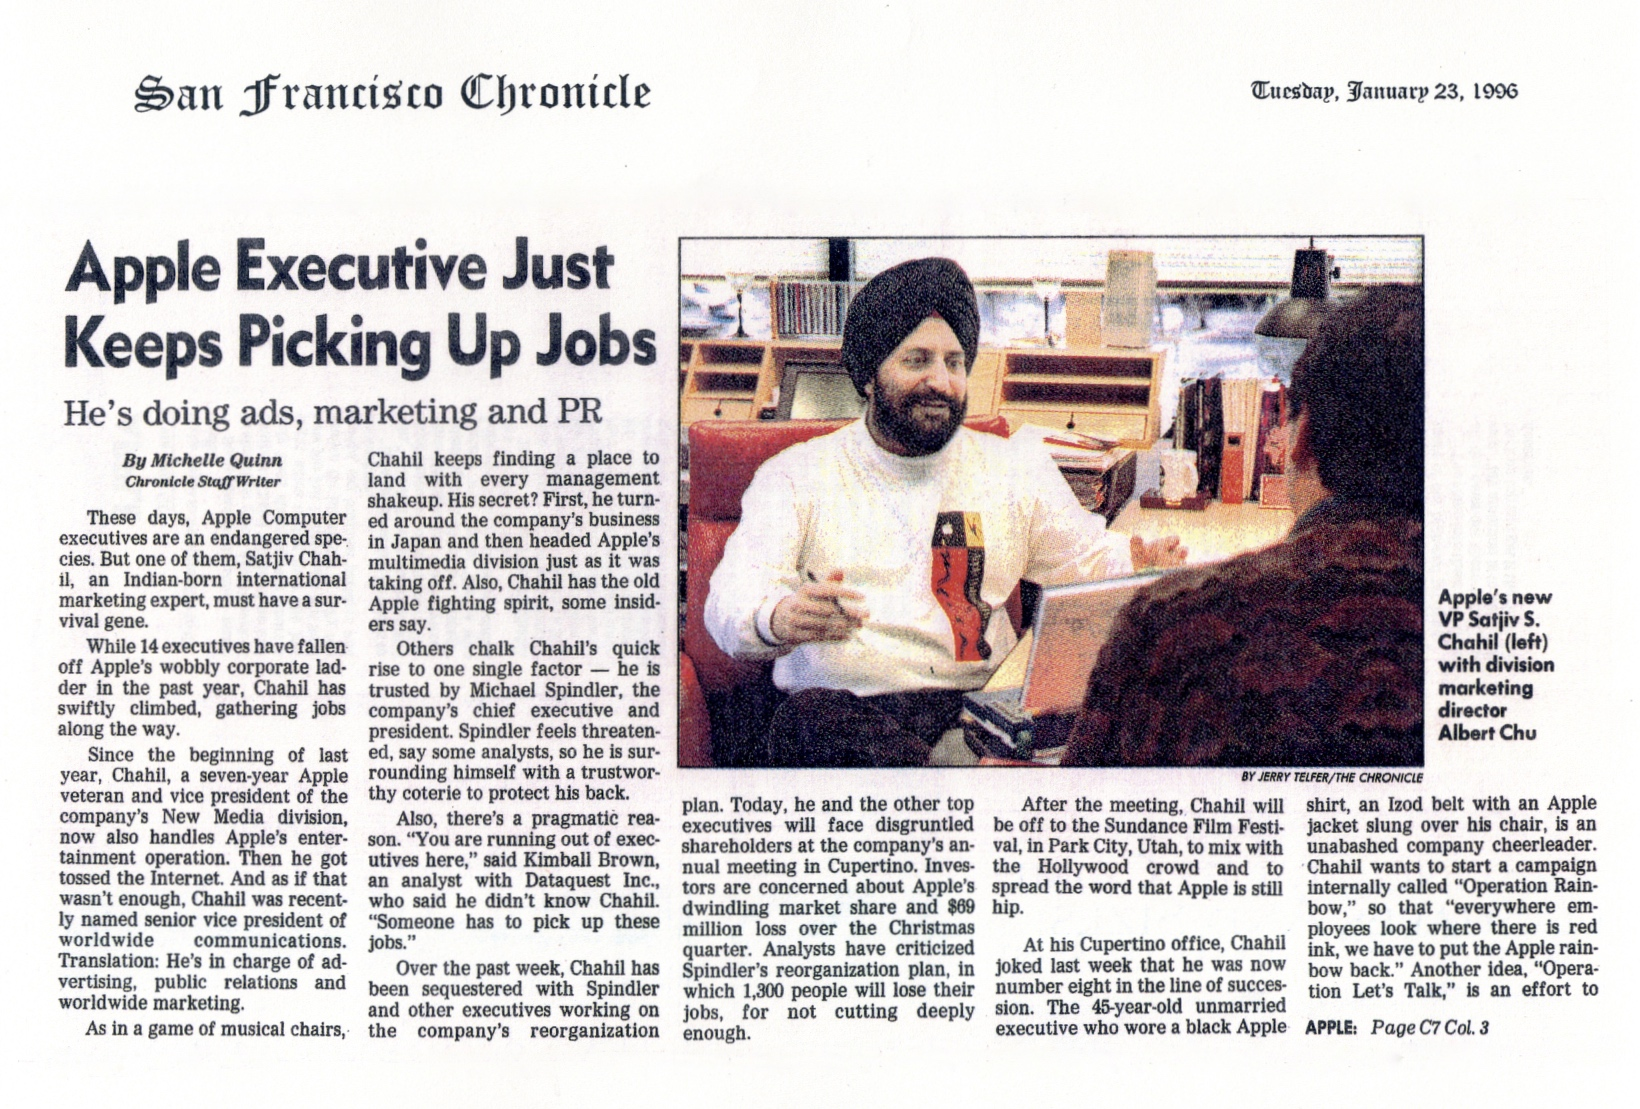 (1996) SF Cron Execs new jobs P1